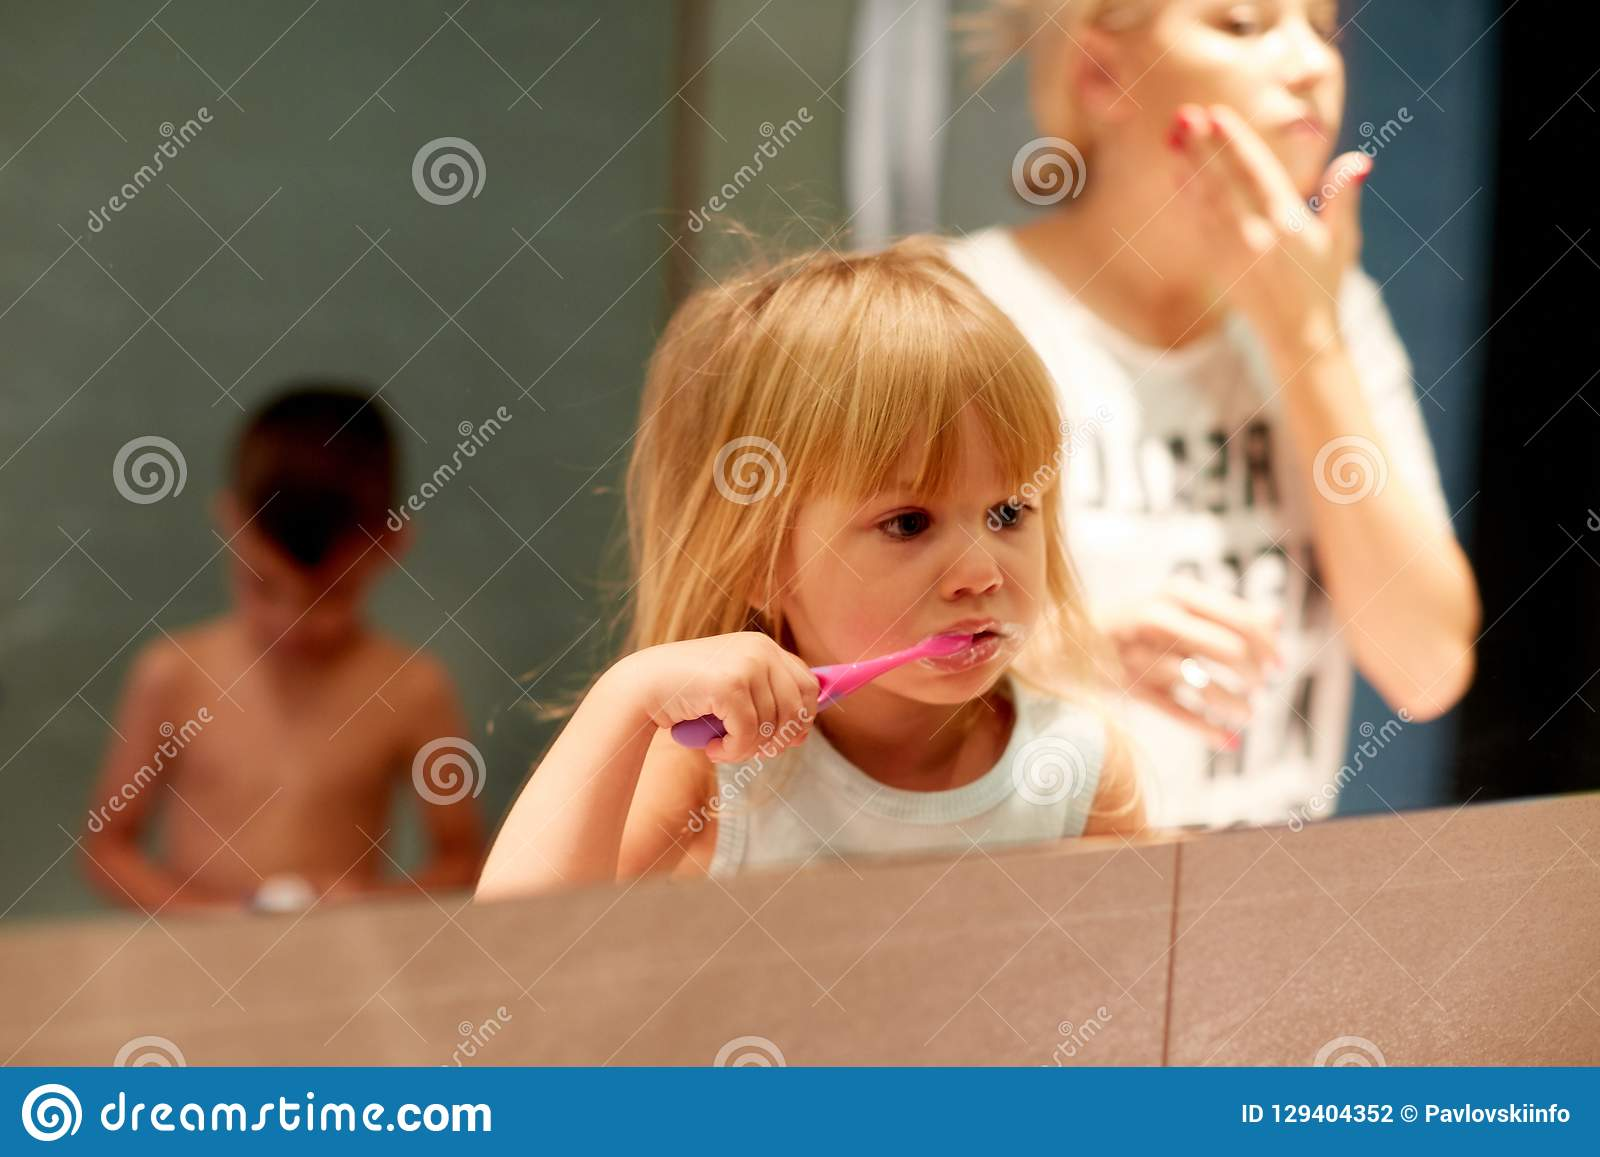 Mother And Child Brushing Teeth In Bathroom Stock Photo